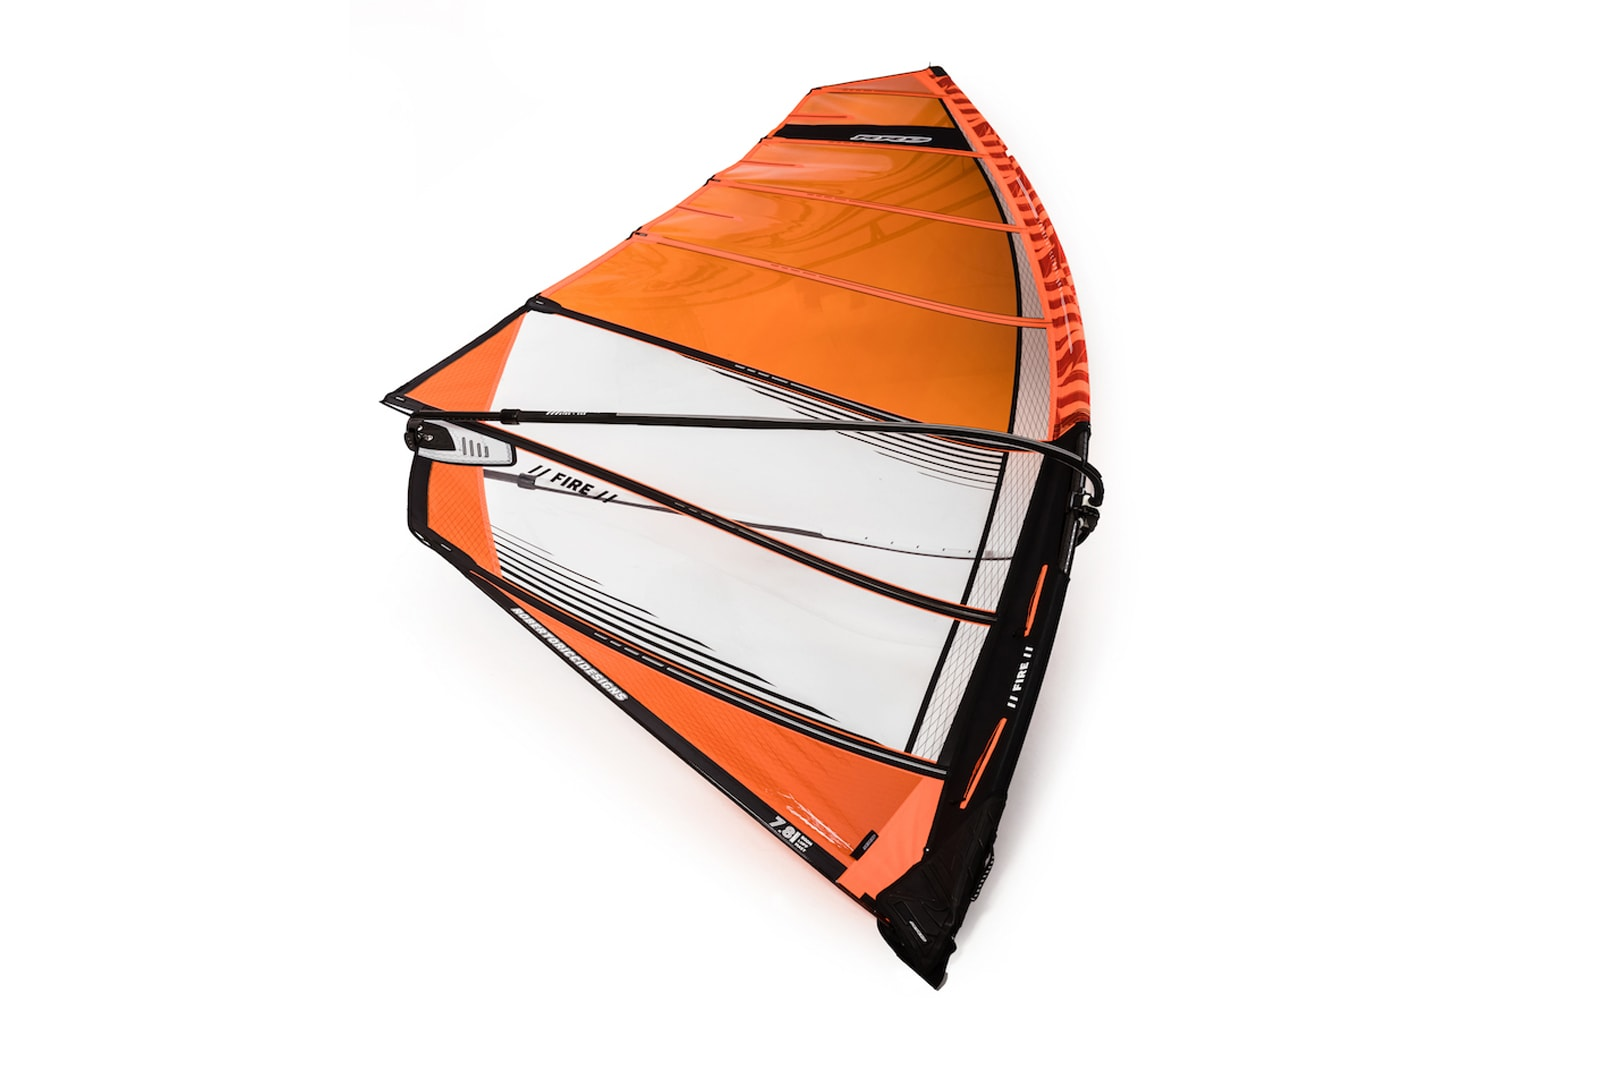 nastrojena plachta fire orange y25 rrd windsurfing karlin druha strana